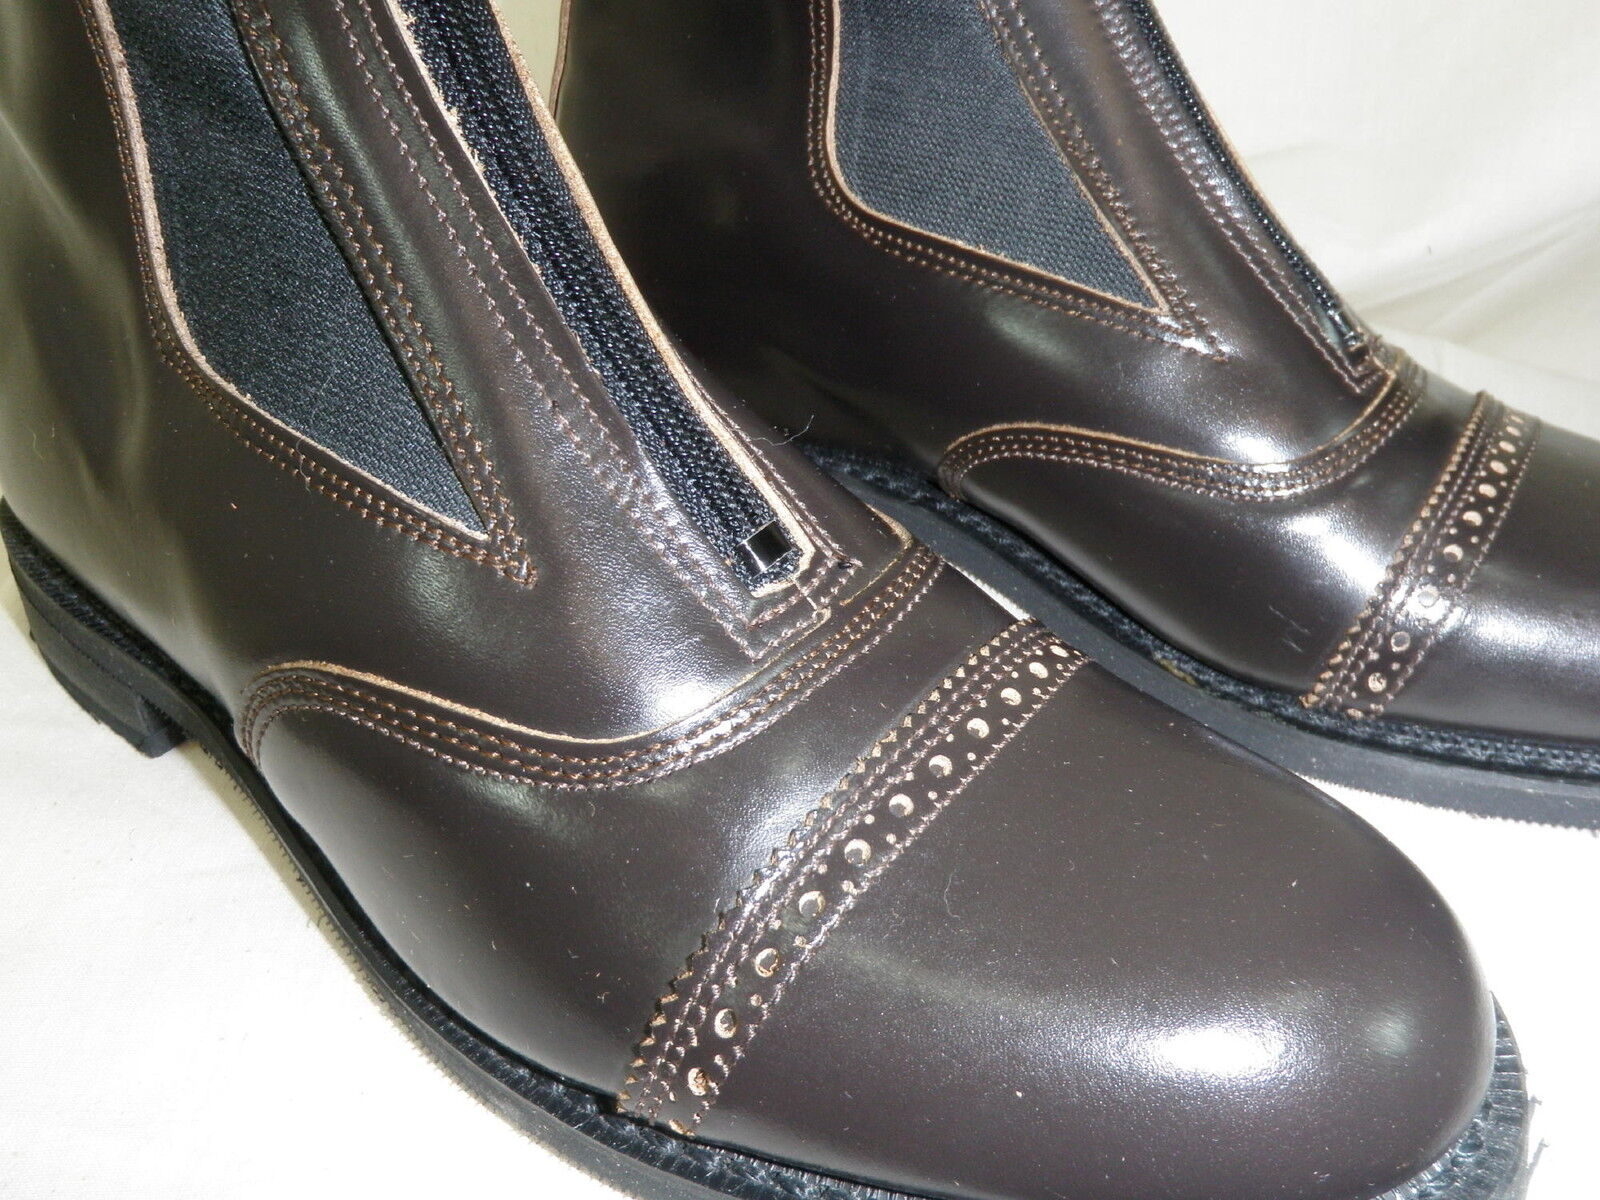 Reed Hill  Dark Brown Leather Zipper Jod Boots Ladies size 71 2 C - Made in USA  everyday low prices